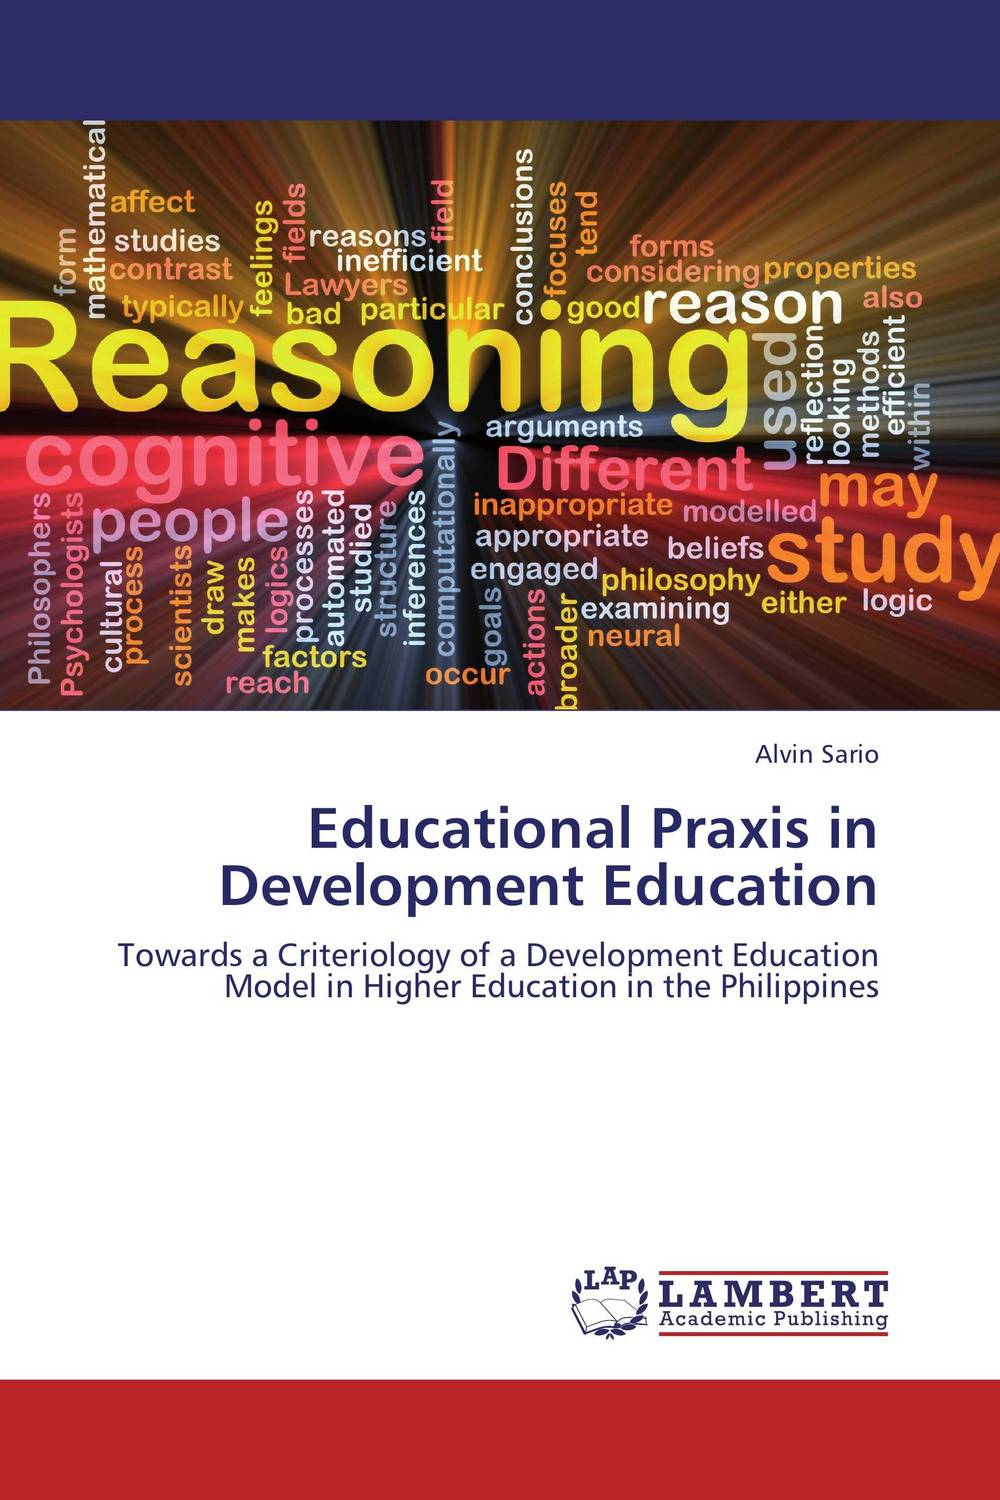 Educational Praxis in Development Education praxis ii middle school mathematics 5169 book online praxis teacher certification test prep